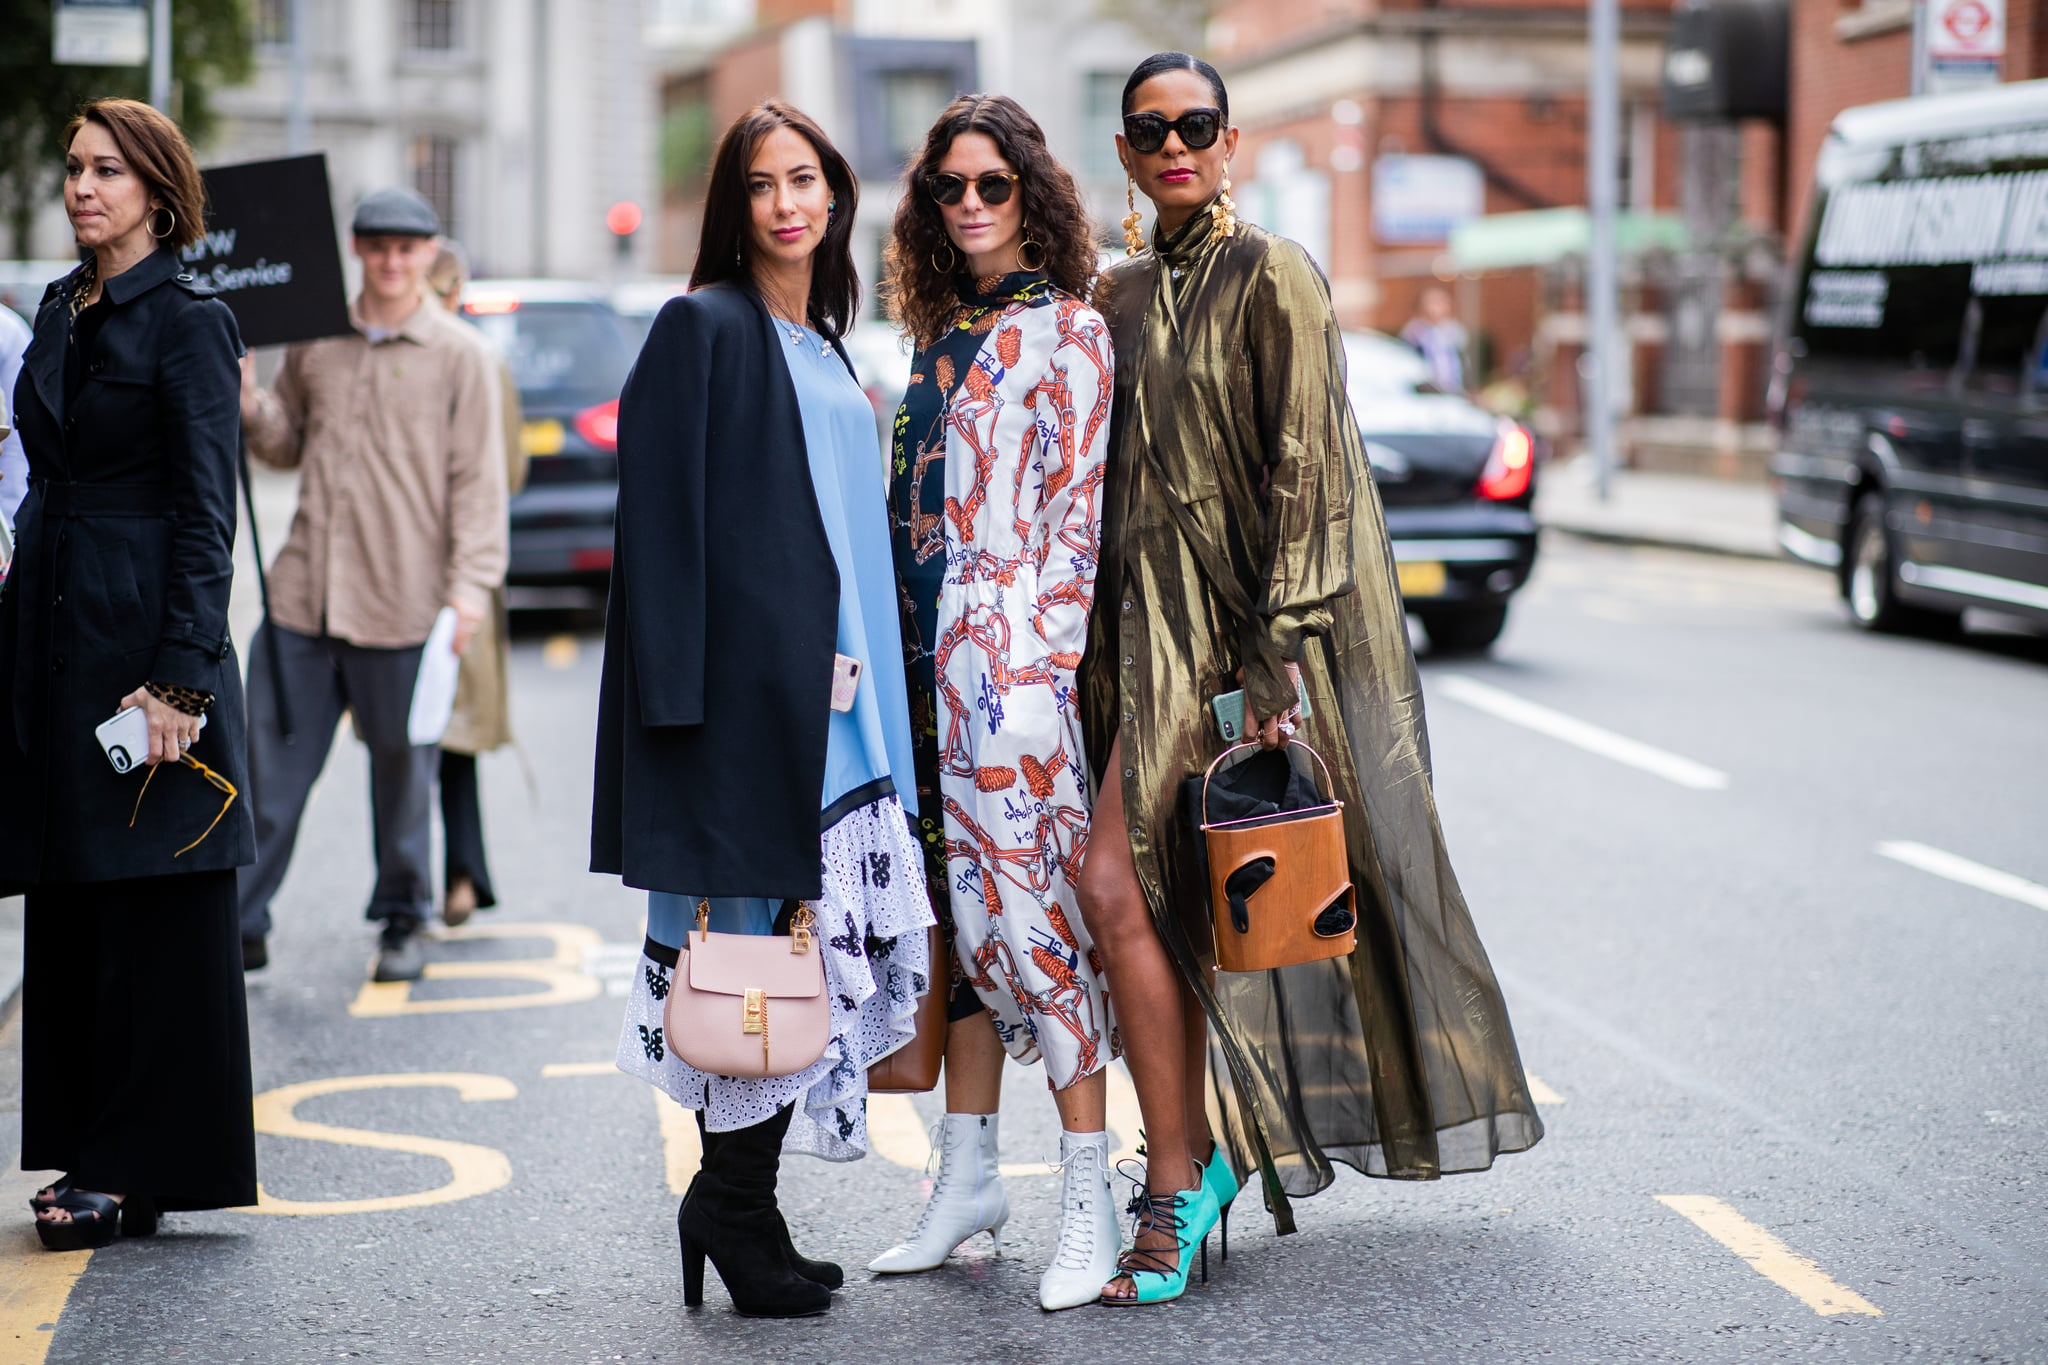 LONDON, ENGLAND - SEPTEMBER 18: A guest  wearing pink Chloe bag, blue dress, Hedvig Sagfjord Opshaug wearing two tone dress with print, brown leather bag, white ankle boots and a guest wearing golden coat is seen outside Natasha Zinko during London Fashion Week September 2018 on September 18, 2018 in London, England. (Photo by Christian Vierig/Getty Images)